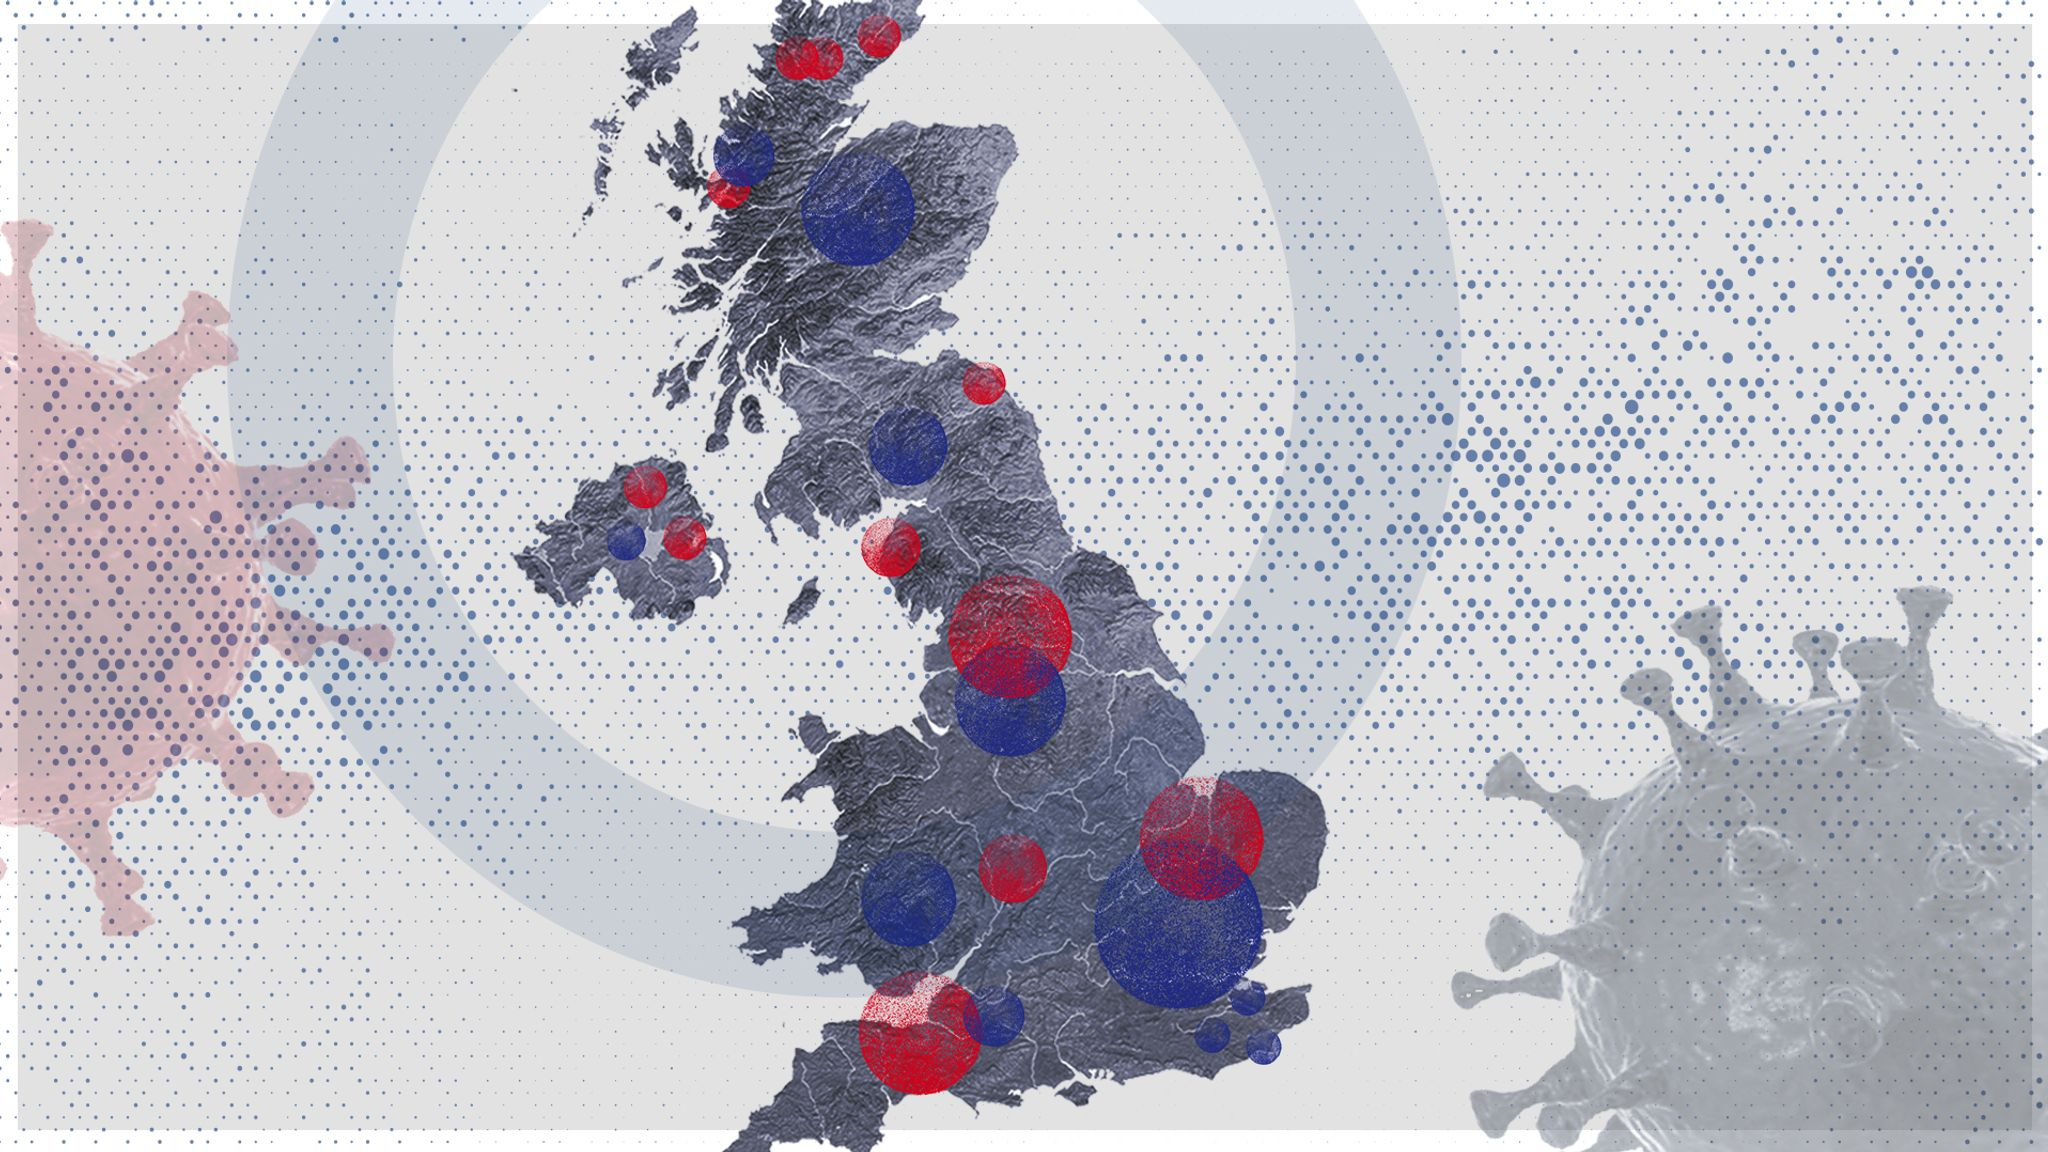 Coronavirus Towns Across England Added To Covid 19 Watchlist Find Out If Your Area Is Affected Uk News Sky News